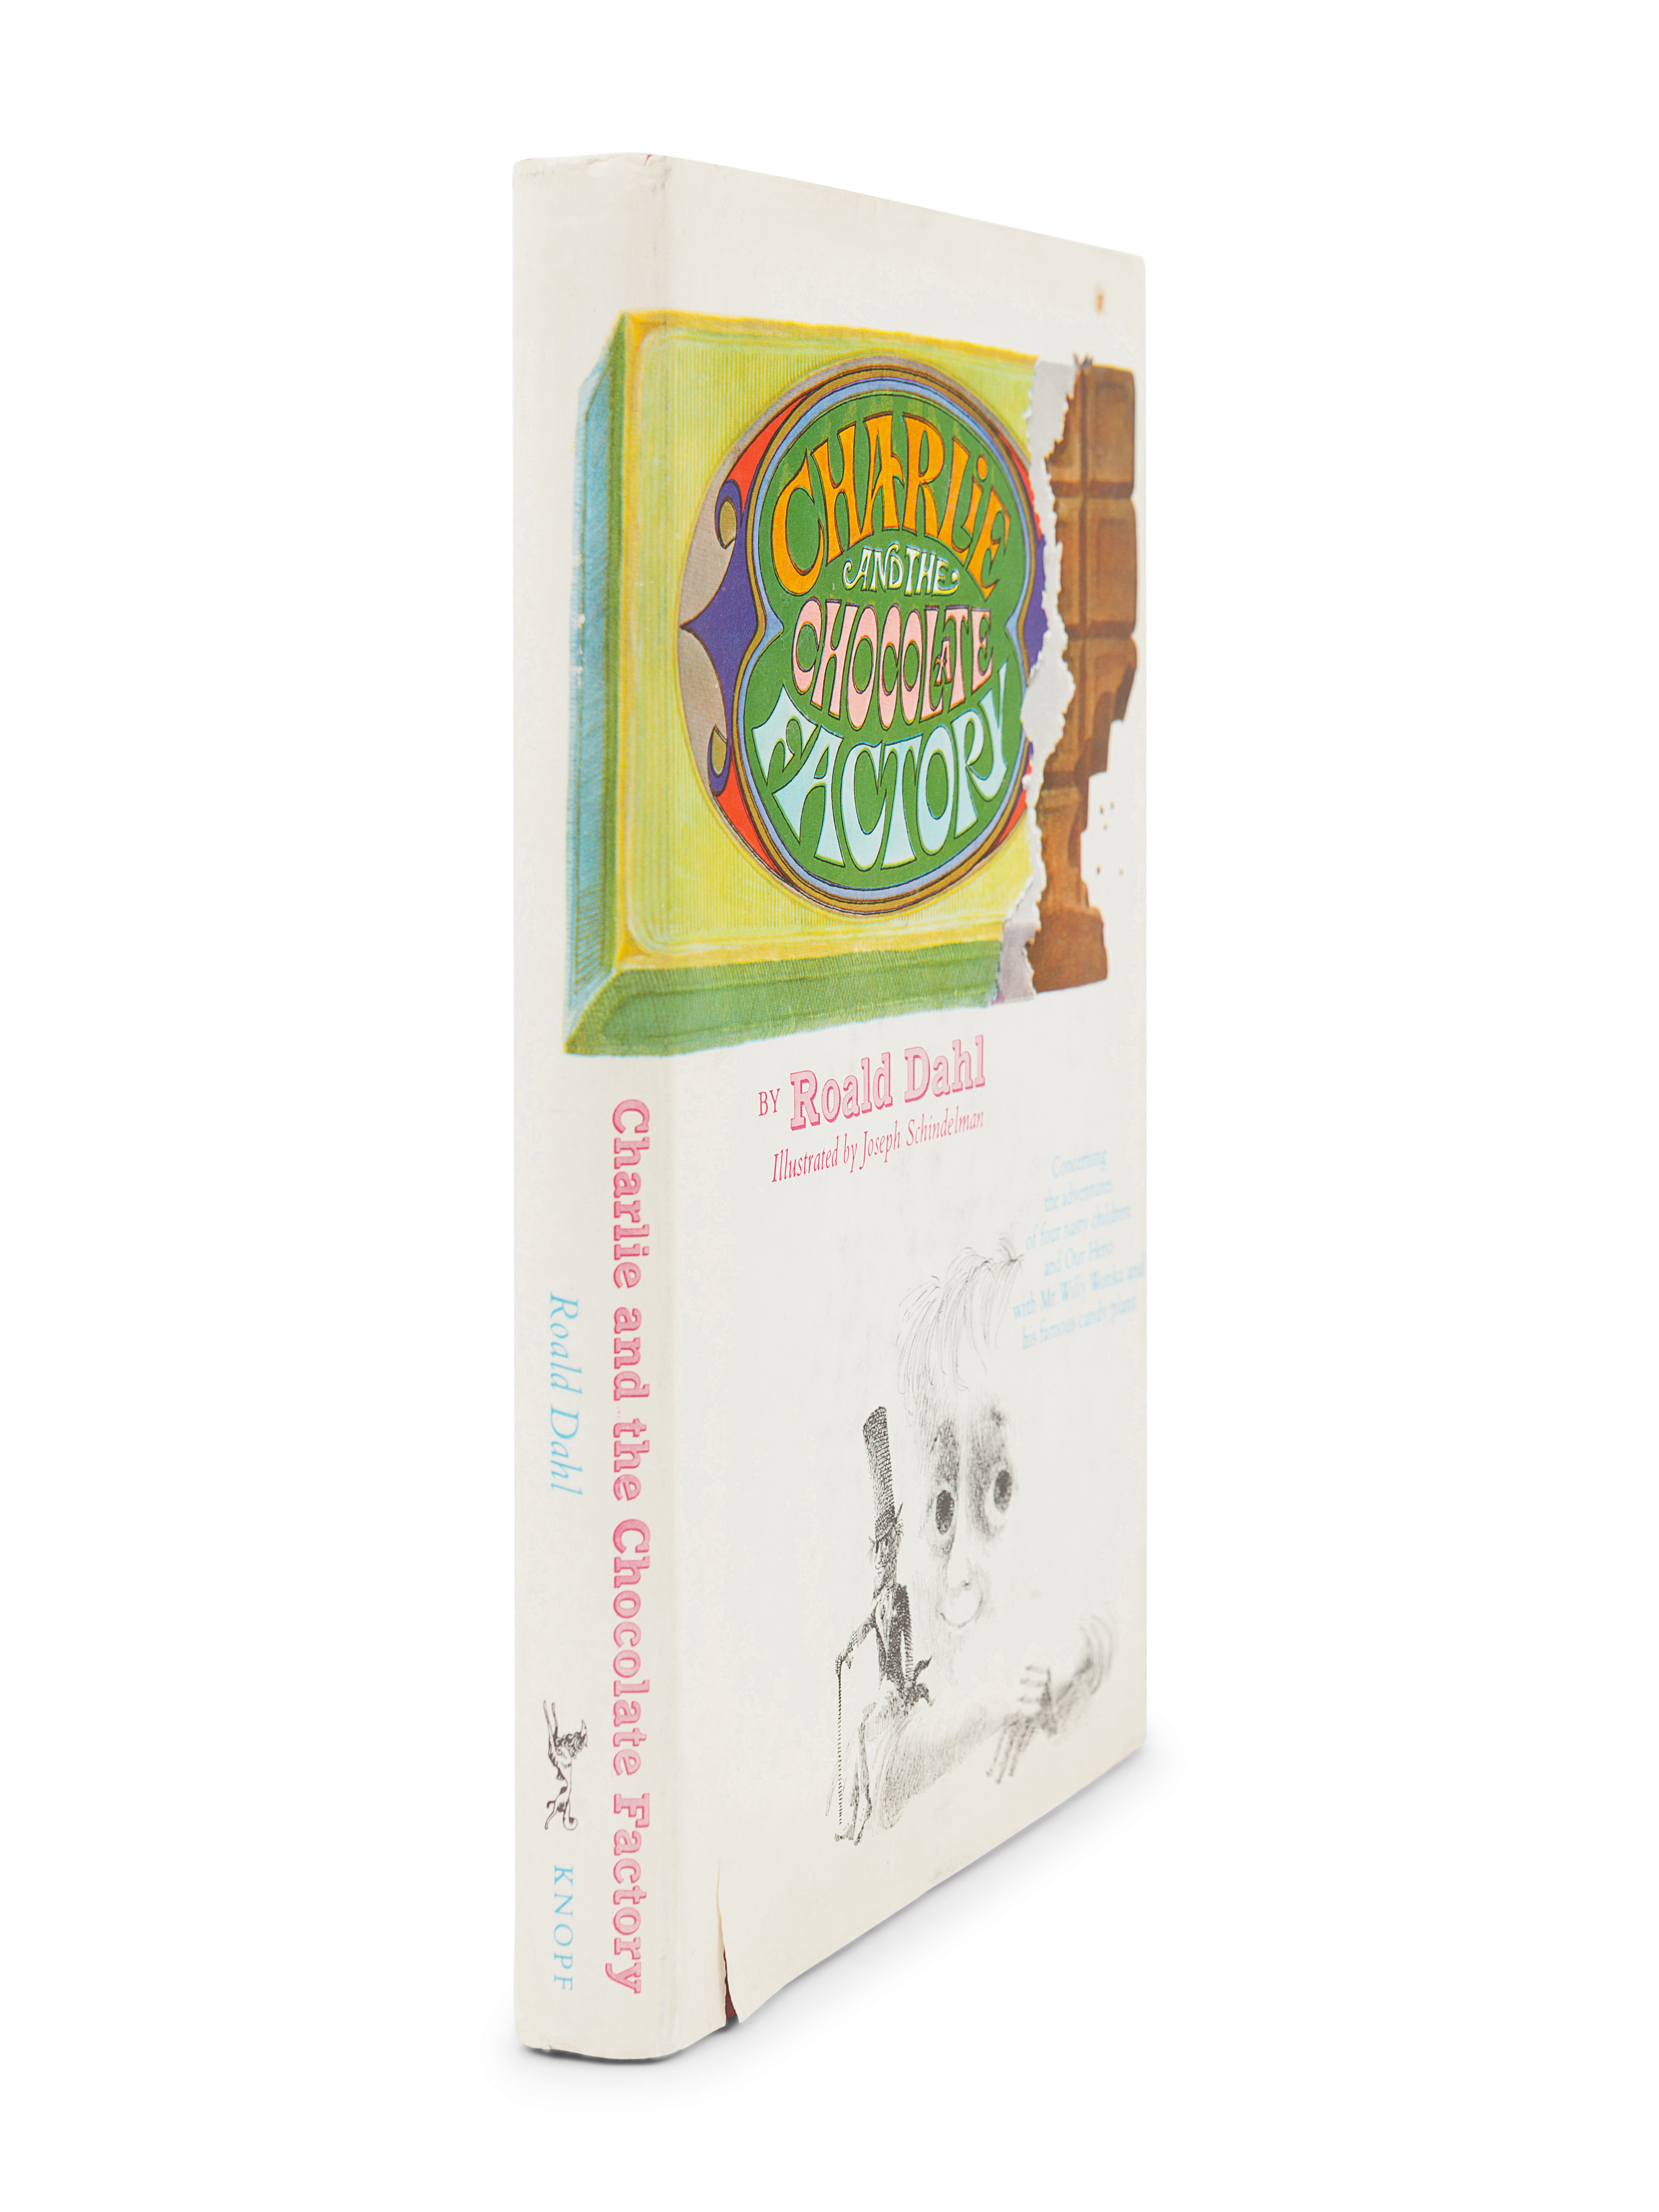 DAHL, Roald (1916-1990). Charlie and the Chocolate Factory. New York: Alfred A. Knopf, 1964. - Image 3 of 3